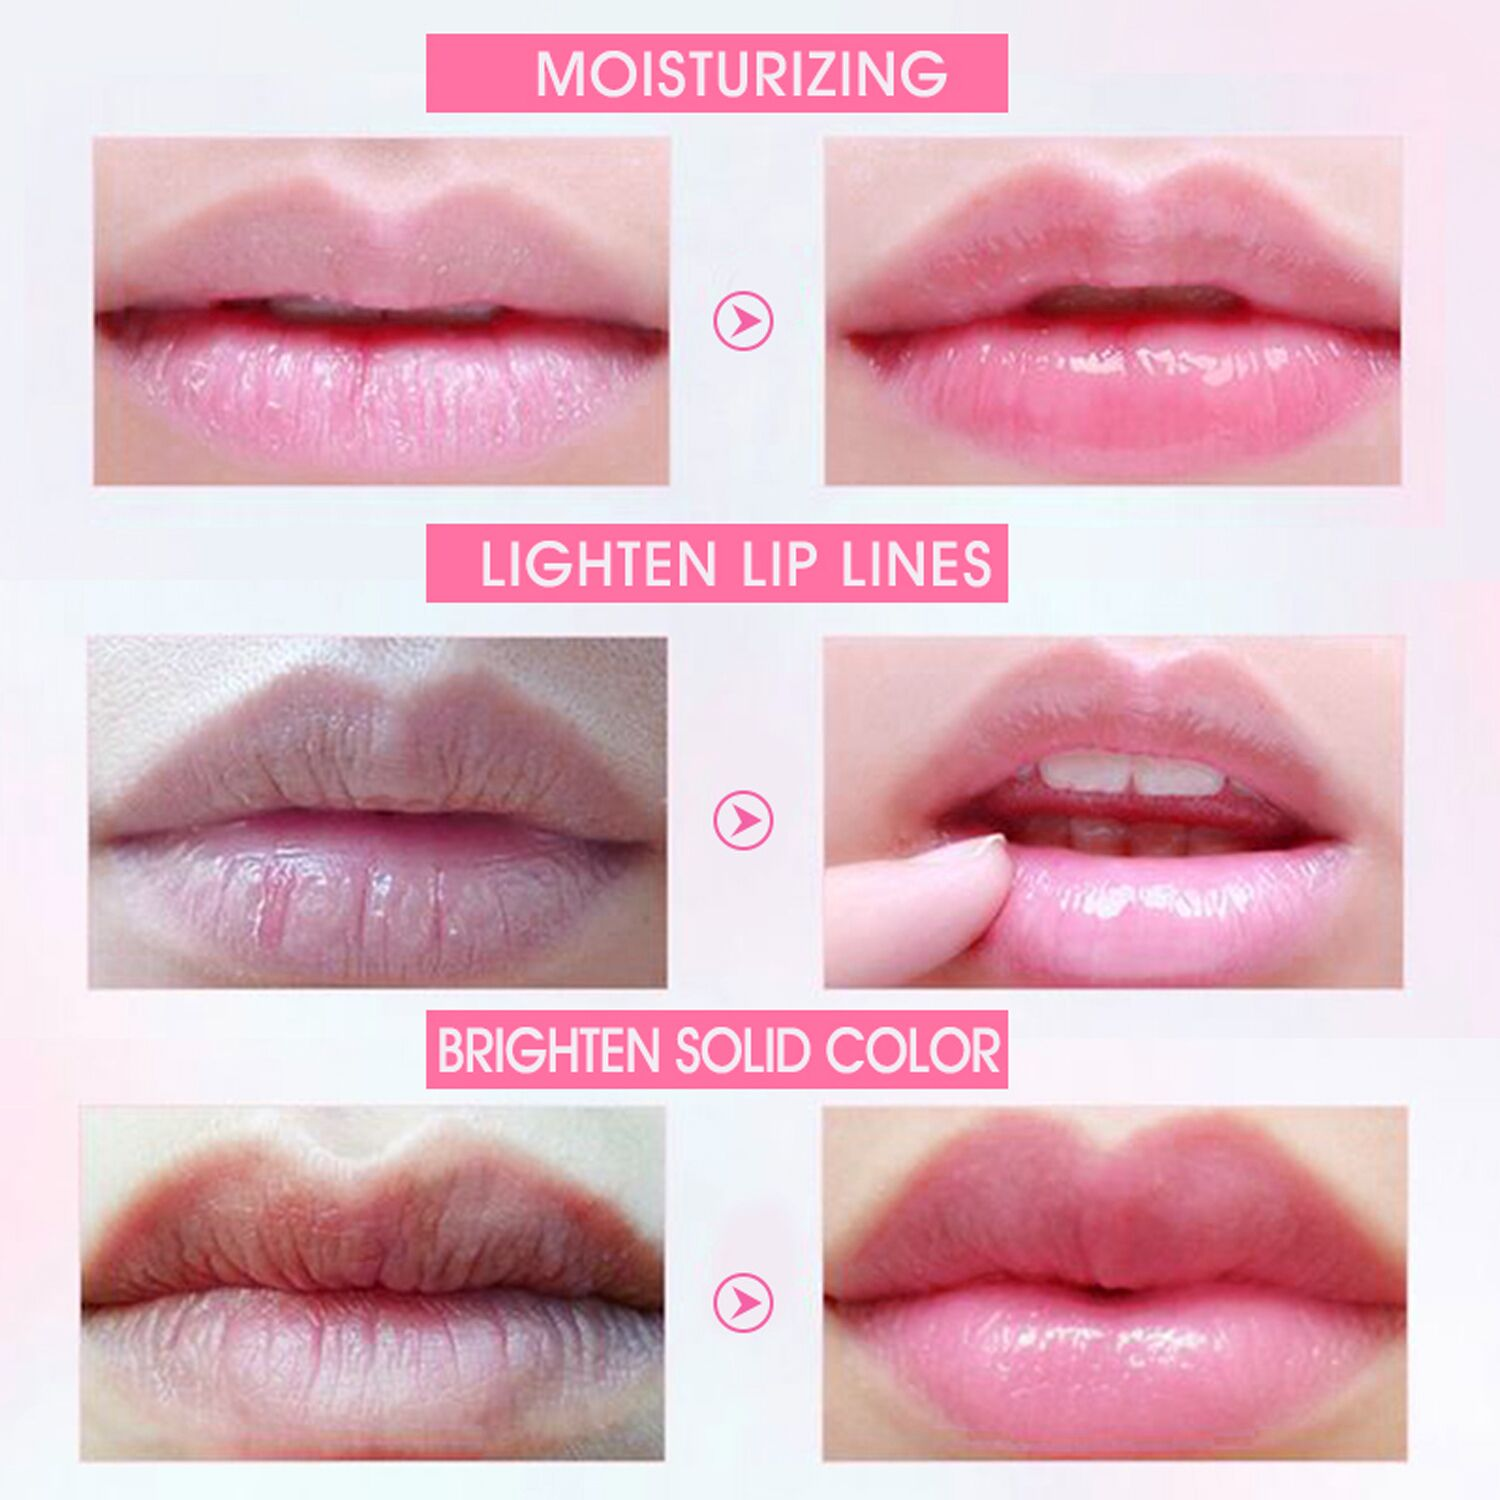 Crystal Collagen Hydrating Sleeping Natural Lip Plumping